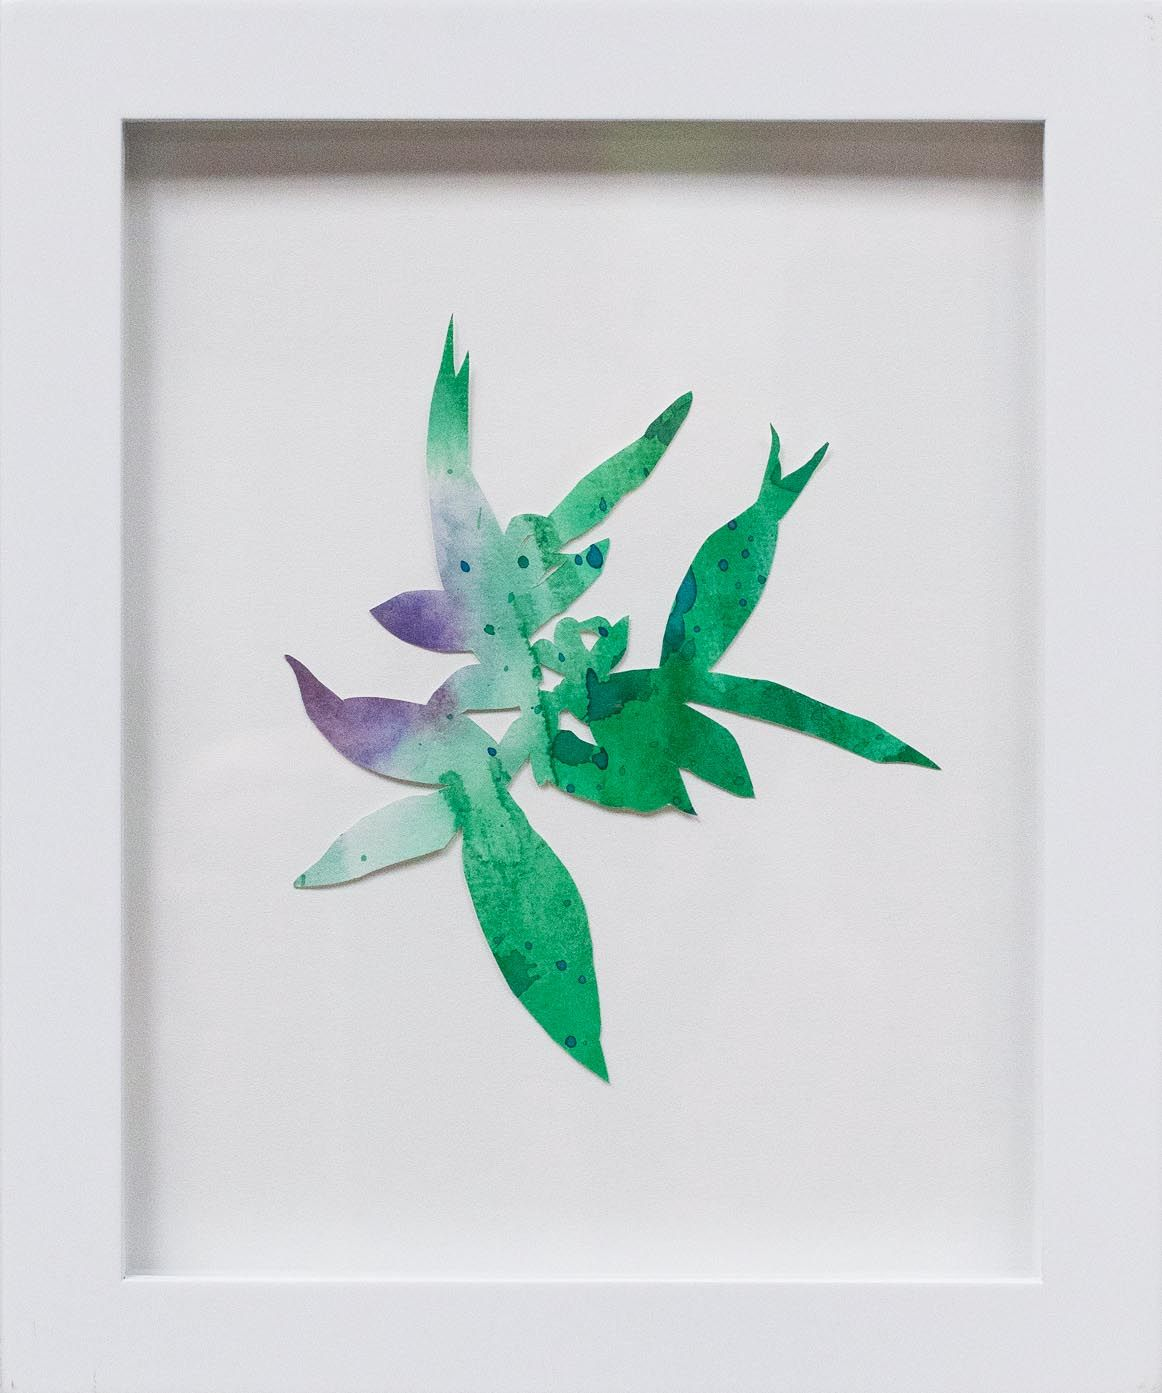 Hannah Cole  Purple Crabgrass #1, 2018  watercolor on cut paper  Framed: 10h x 8w in 25.40h x 20.32w cm  HC_064